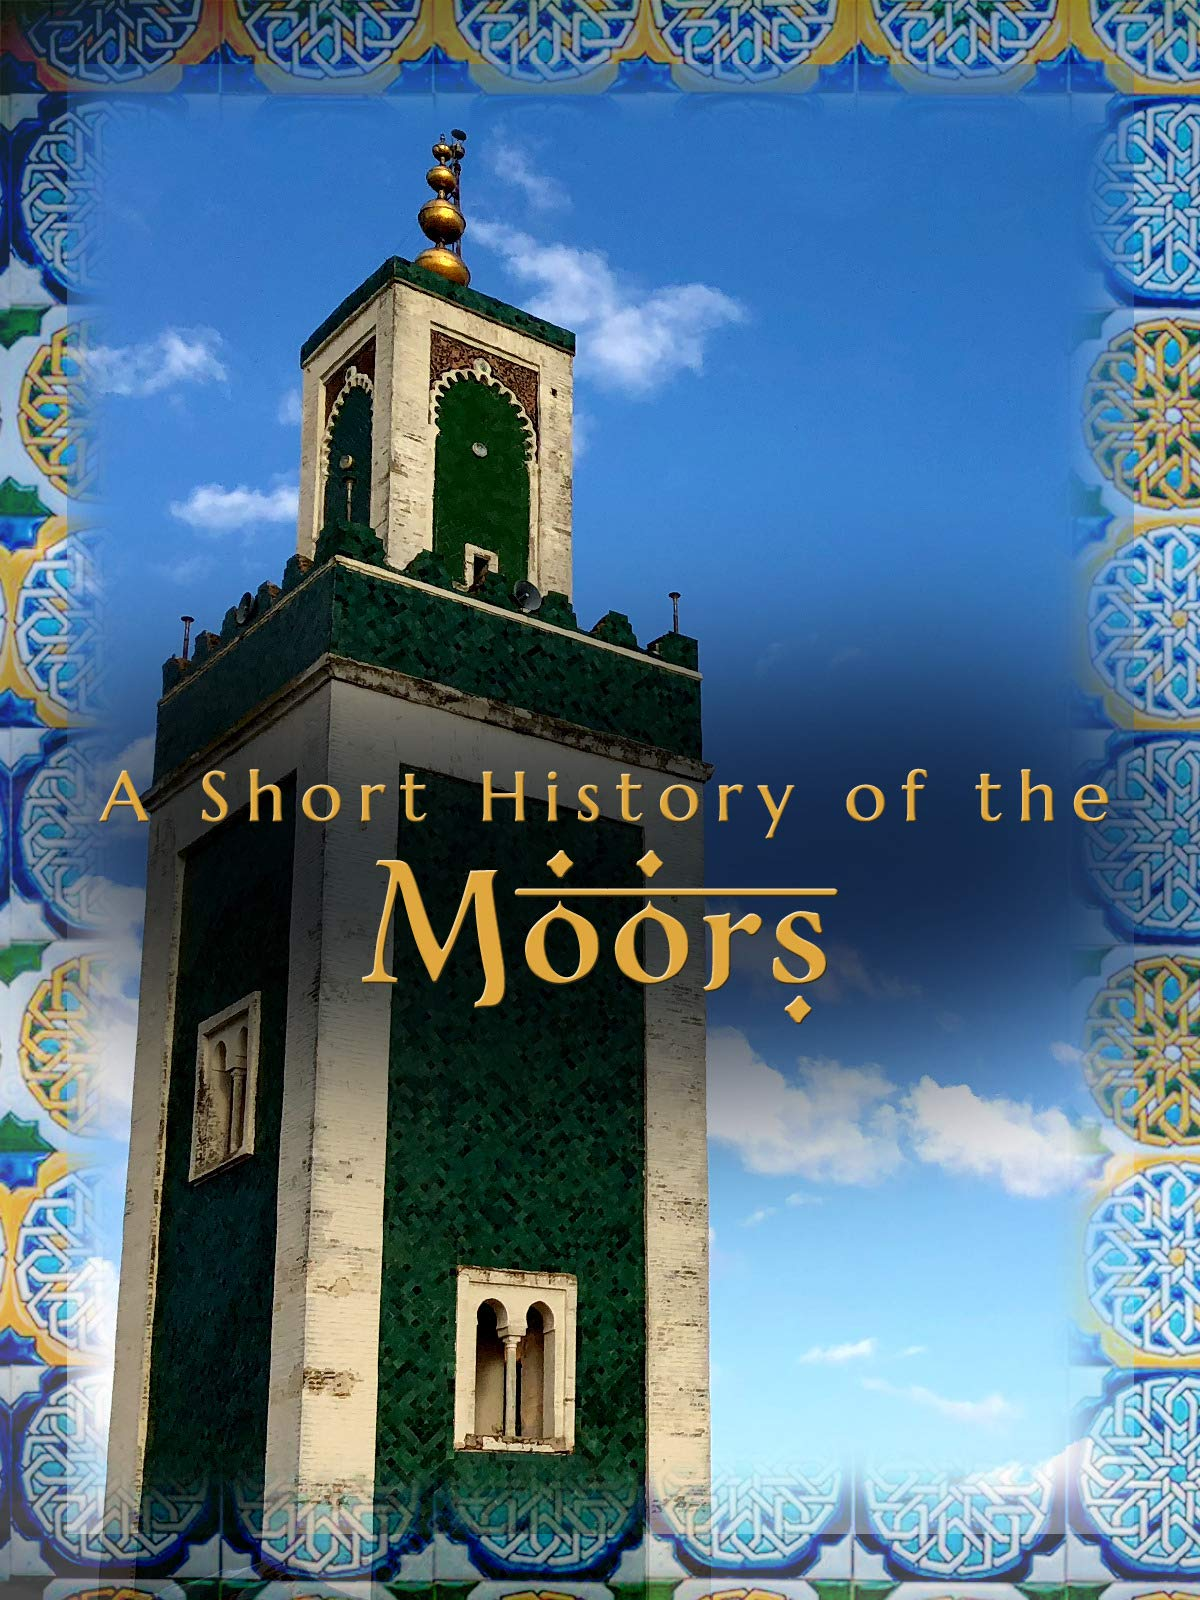 A Short History of the Moors